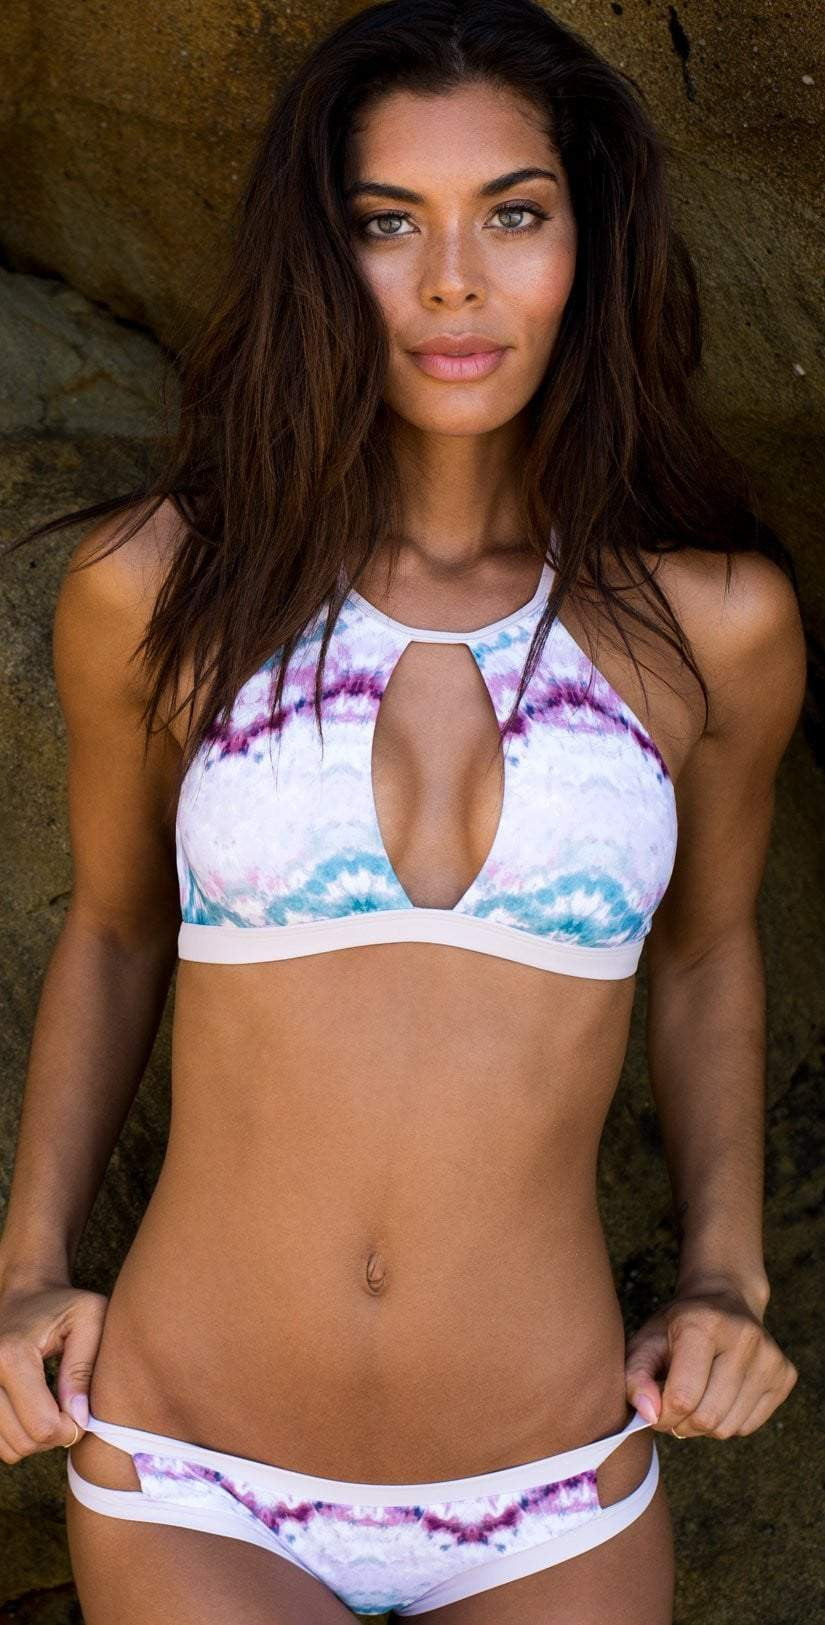 B. Swim Makai Tie Dye Waterfall Hi Neck top and bottom